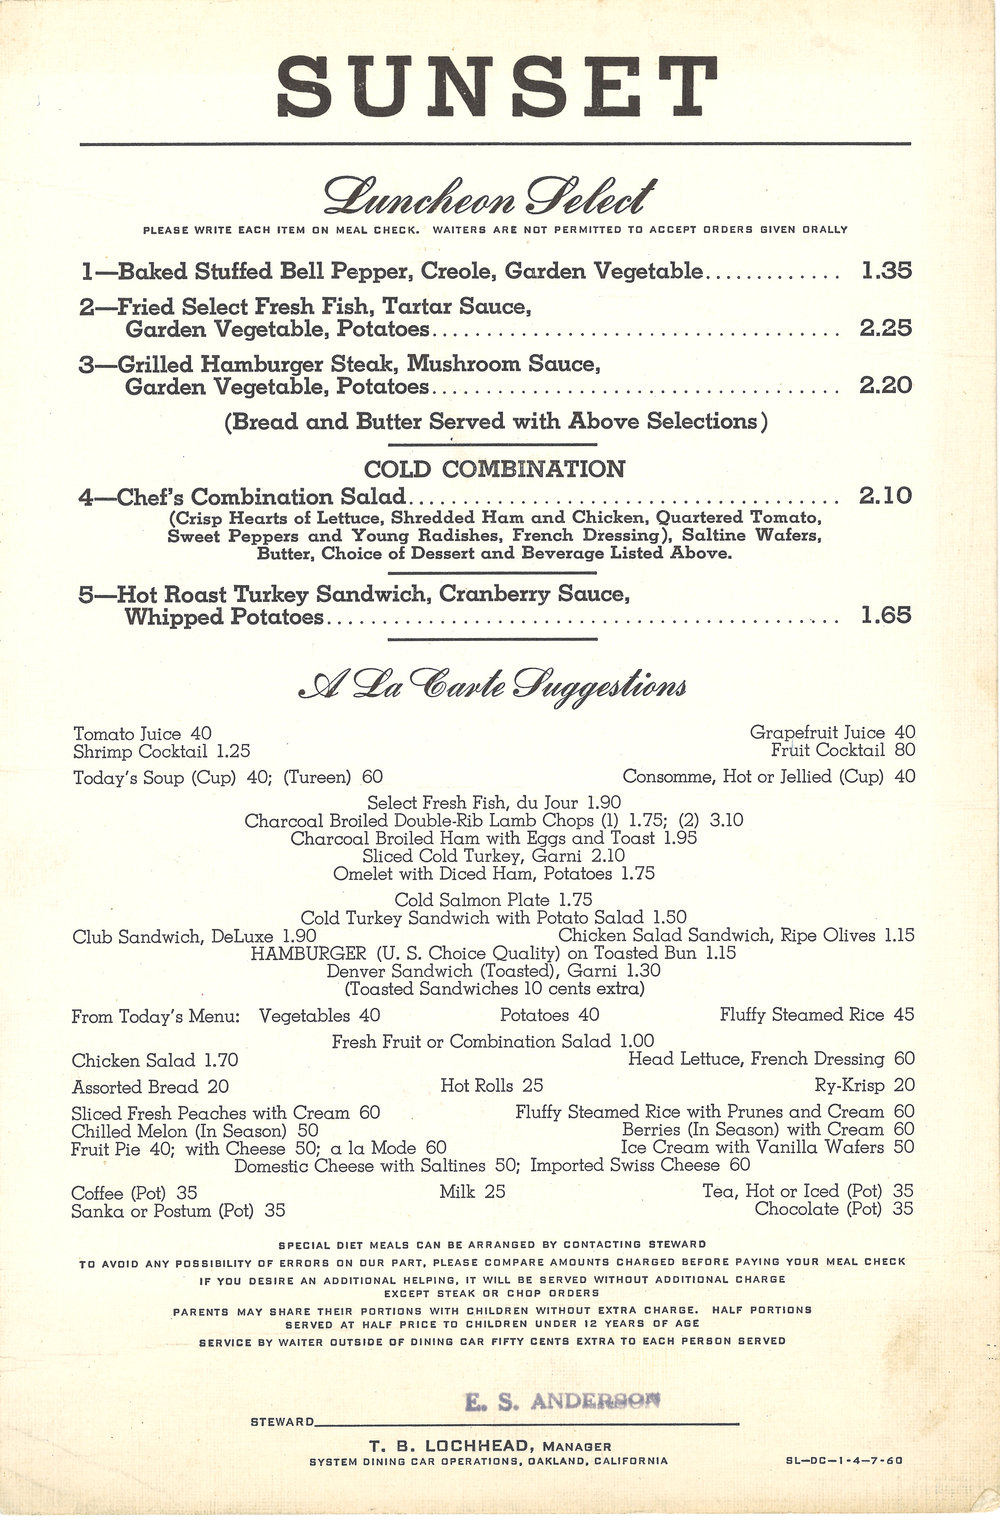 Sunset Luncheon Menu_sm.jpg